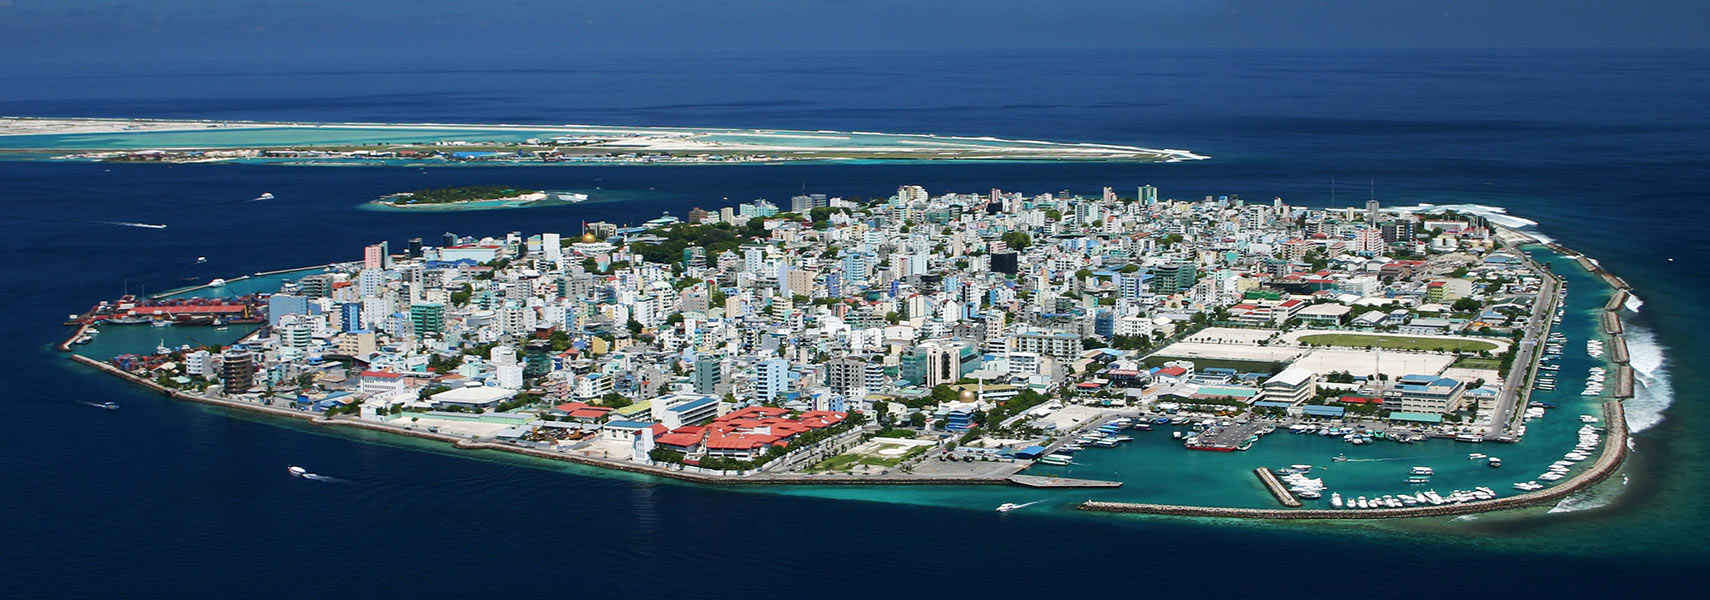 Male Maldives Map Google Map of Malé, Maldives   Nations Online Project